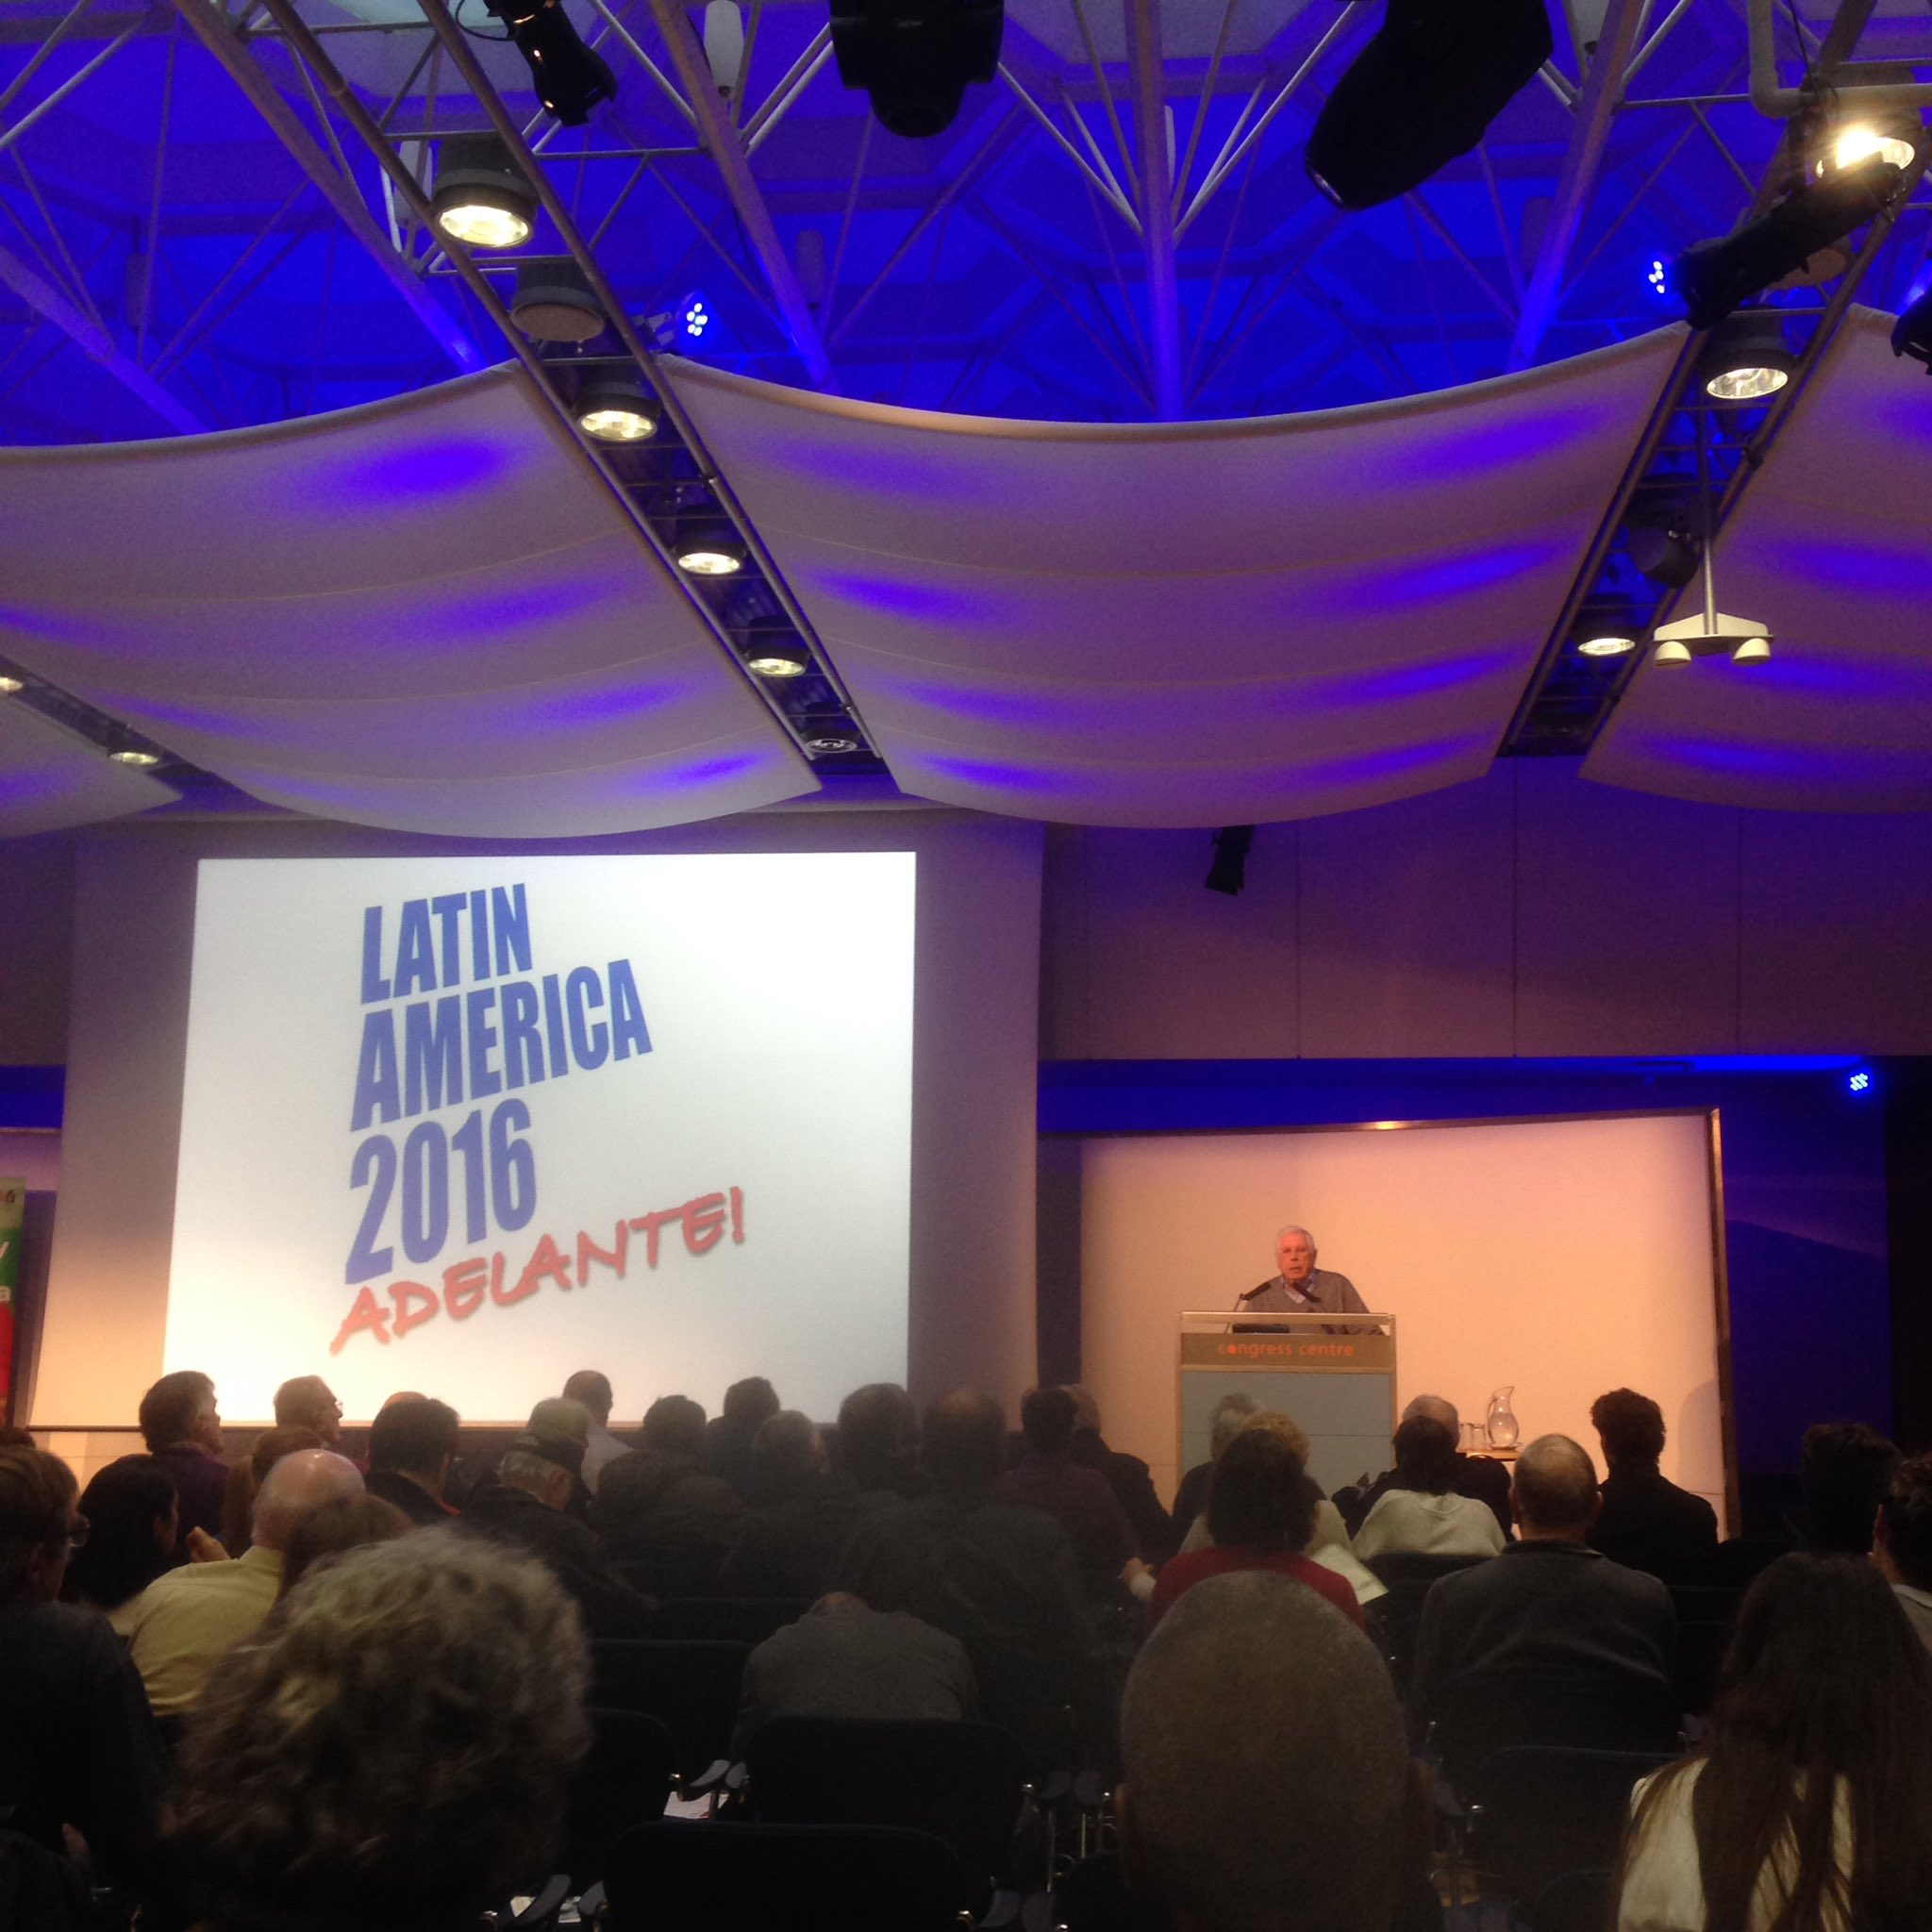 Honoured to be here at @LatAmerica16 with @ENCA_News. A room full of love and admiration to mark the passing of #FidelCastro https://t.co/XiFDFK34II